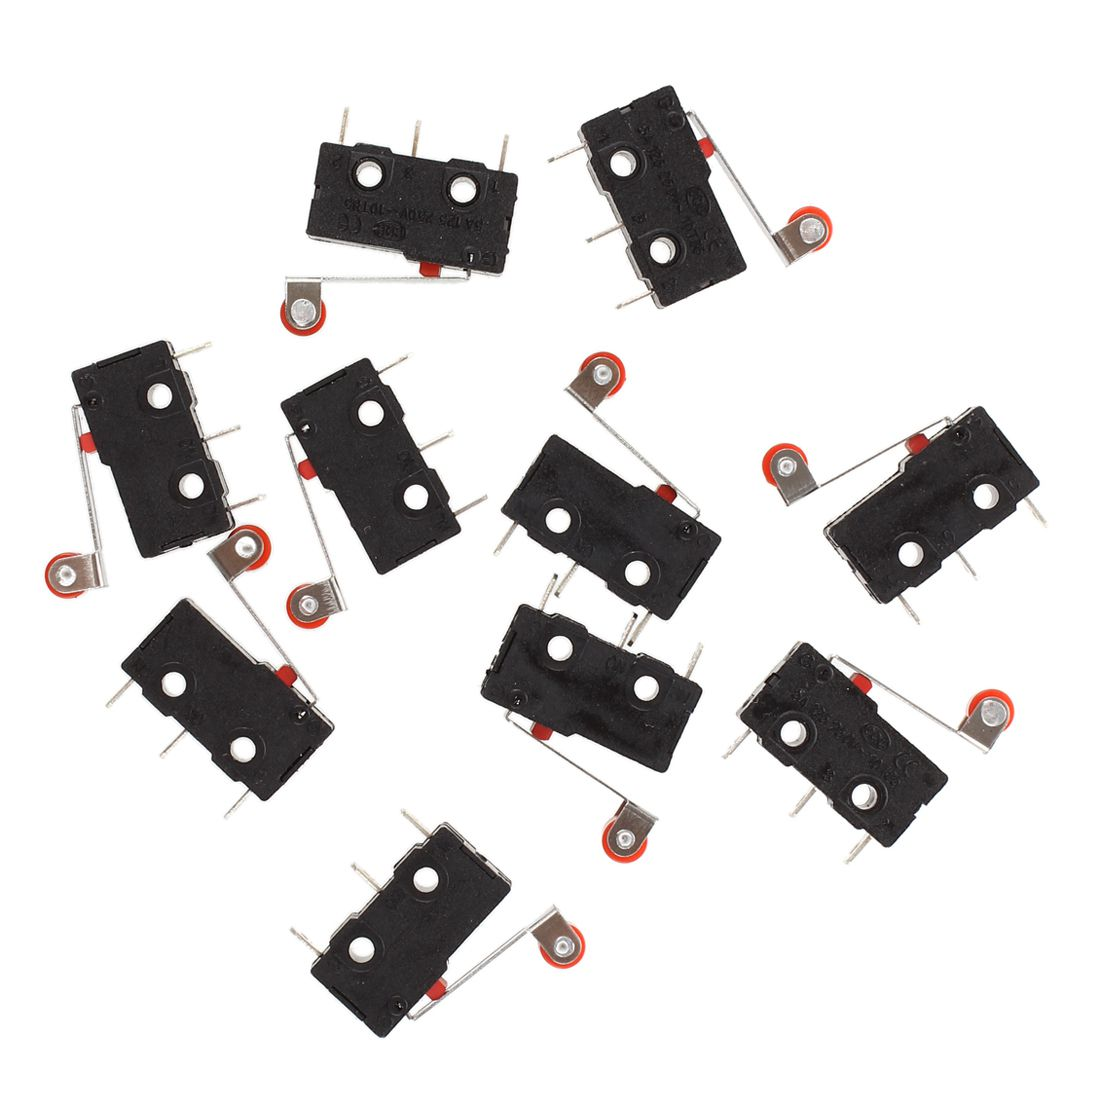 10 Pcs Mini Micro Limit Switch Roller Lever Arm SPDT Snap Action LOT [vk] 1se7 switch snap action spdt 1a 30v switch